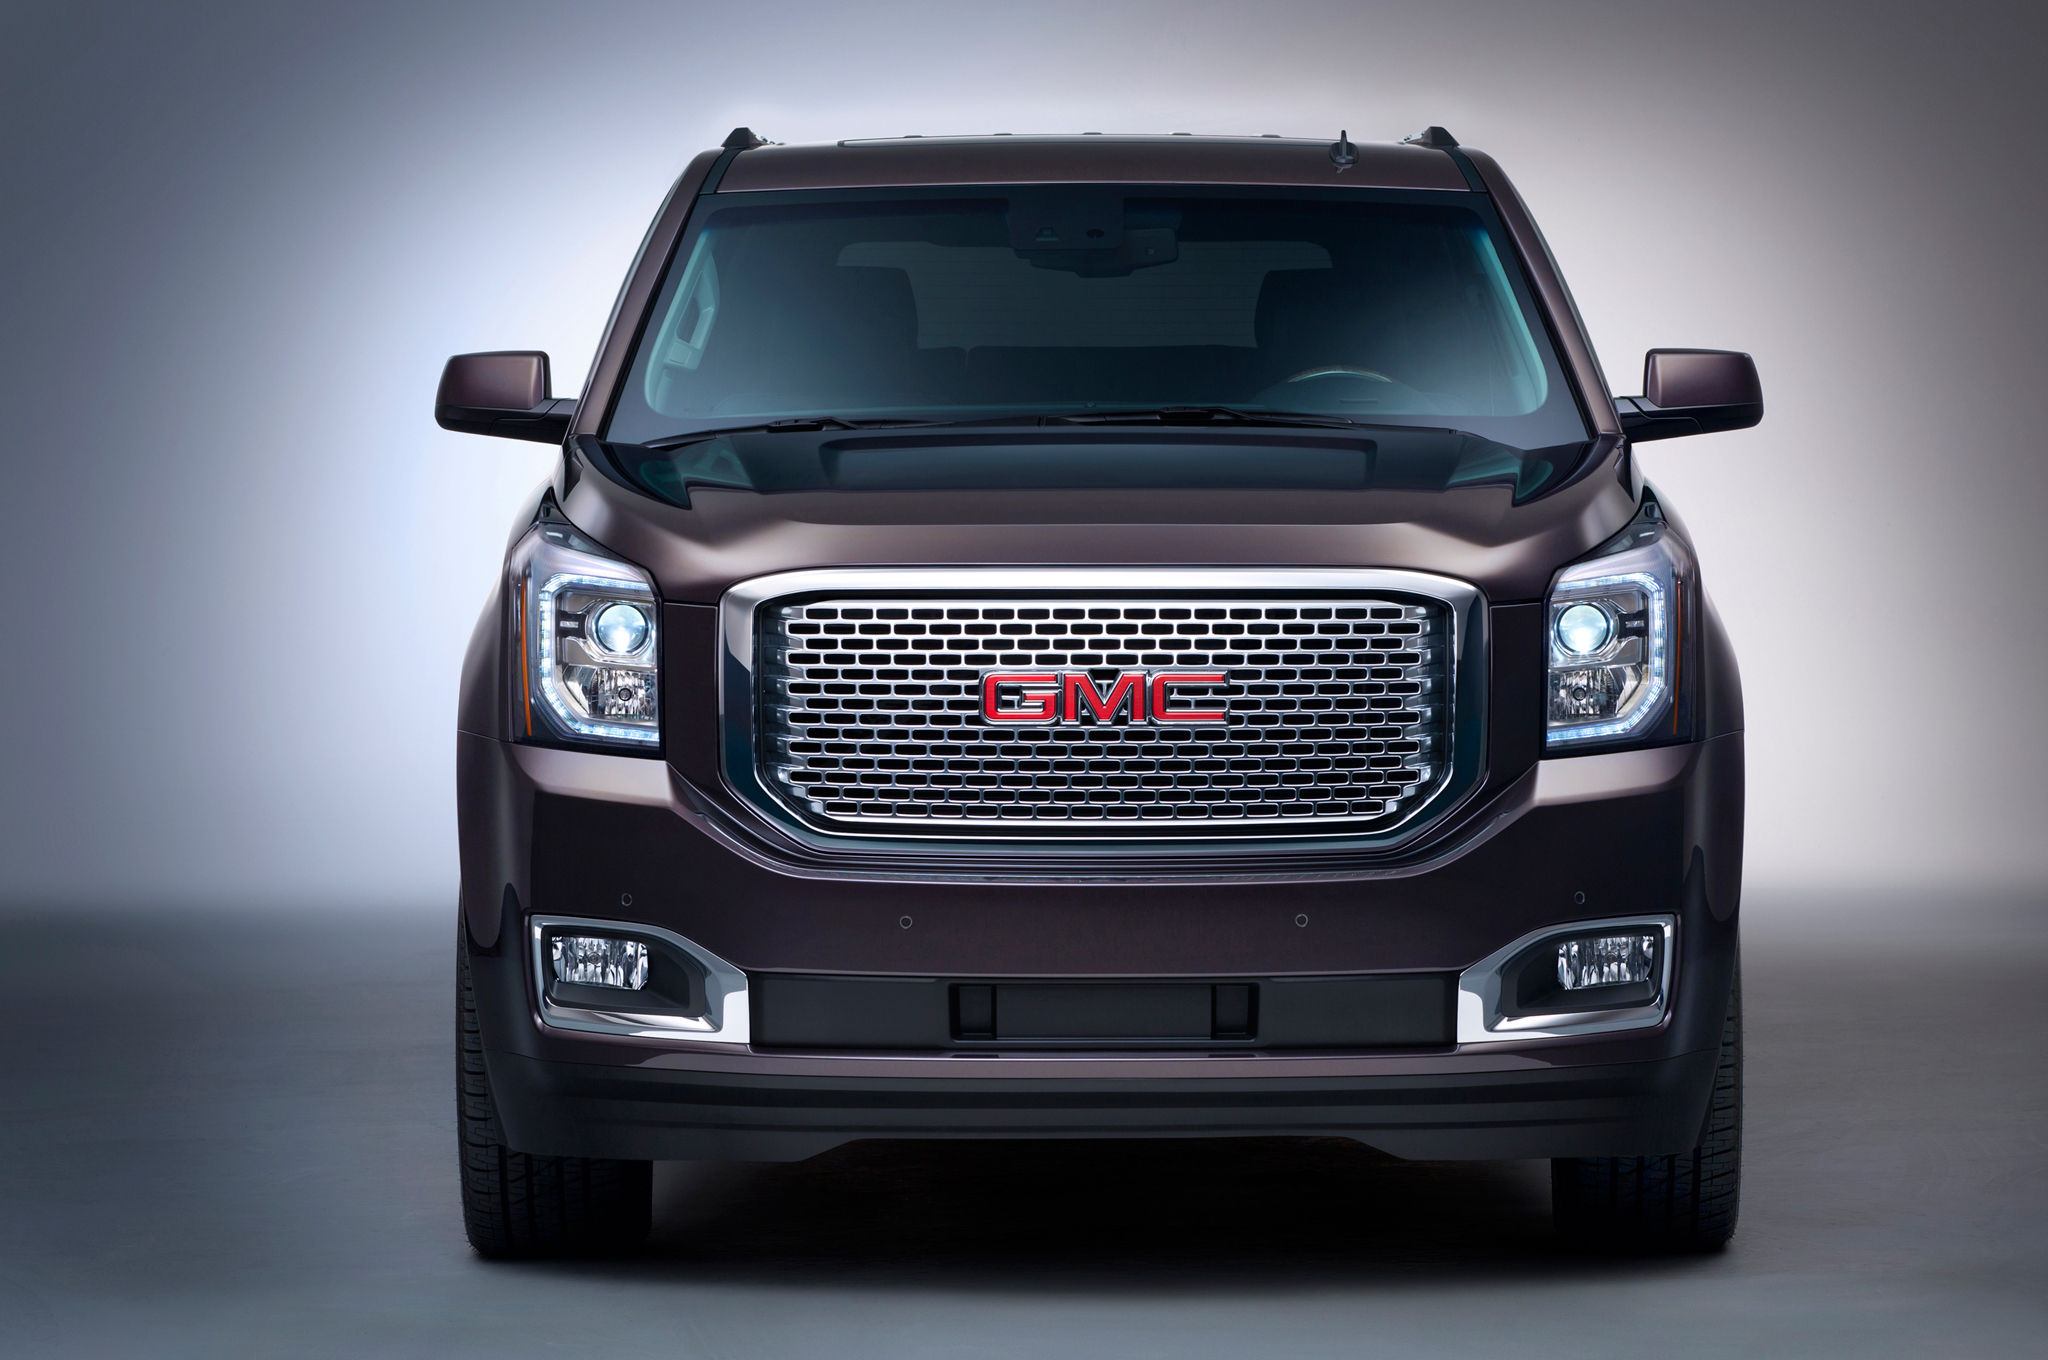 2015 Gmc Yukon Xl Front Grille View (View 1 of 10)